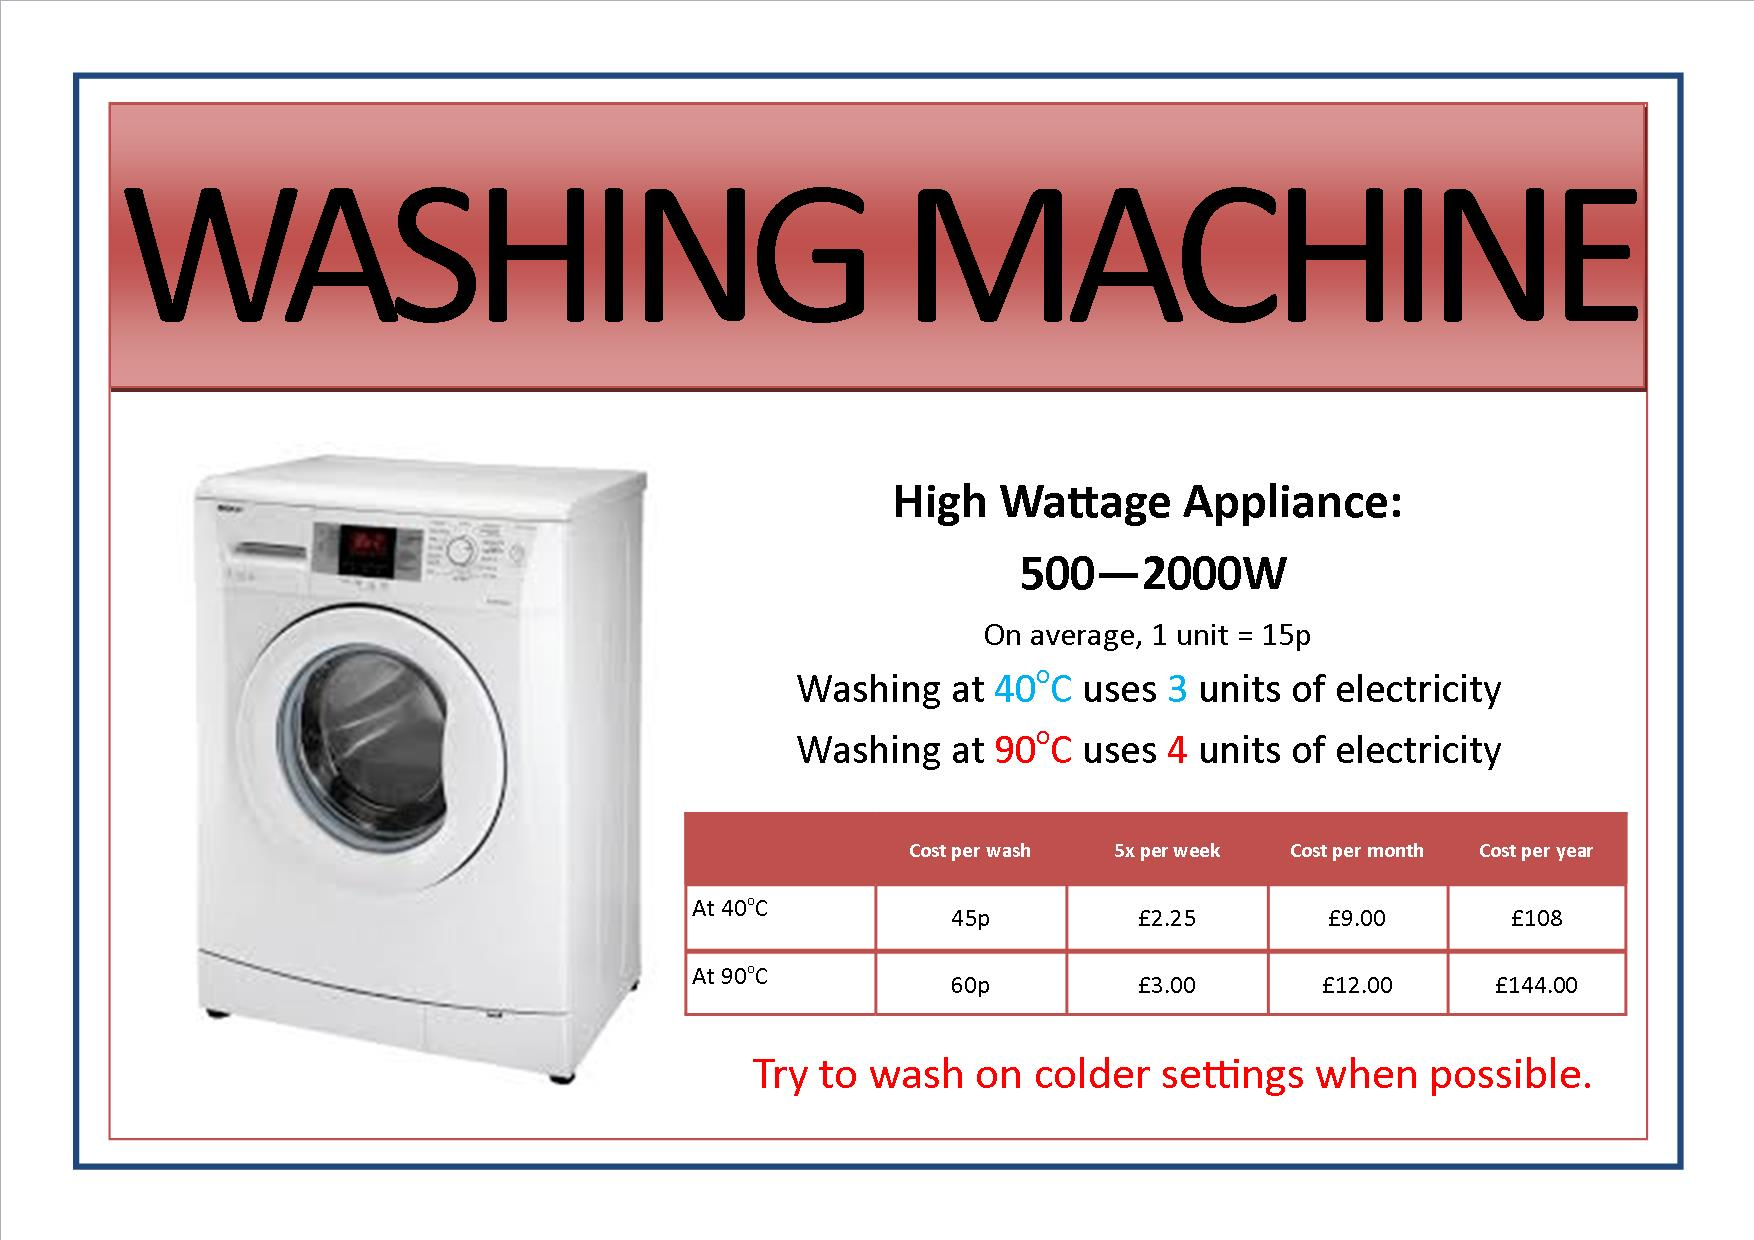 Appliance signs edit4 - washing machine